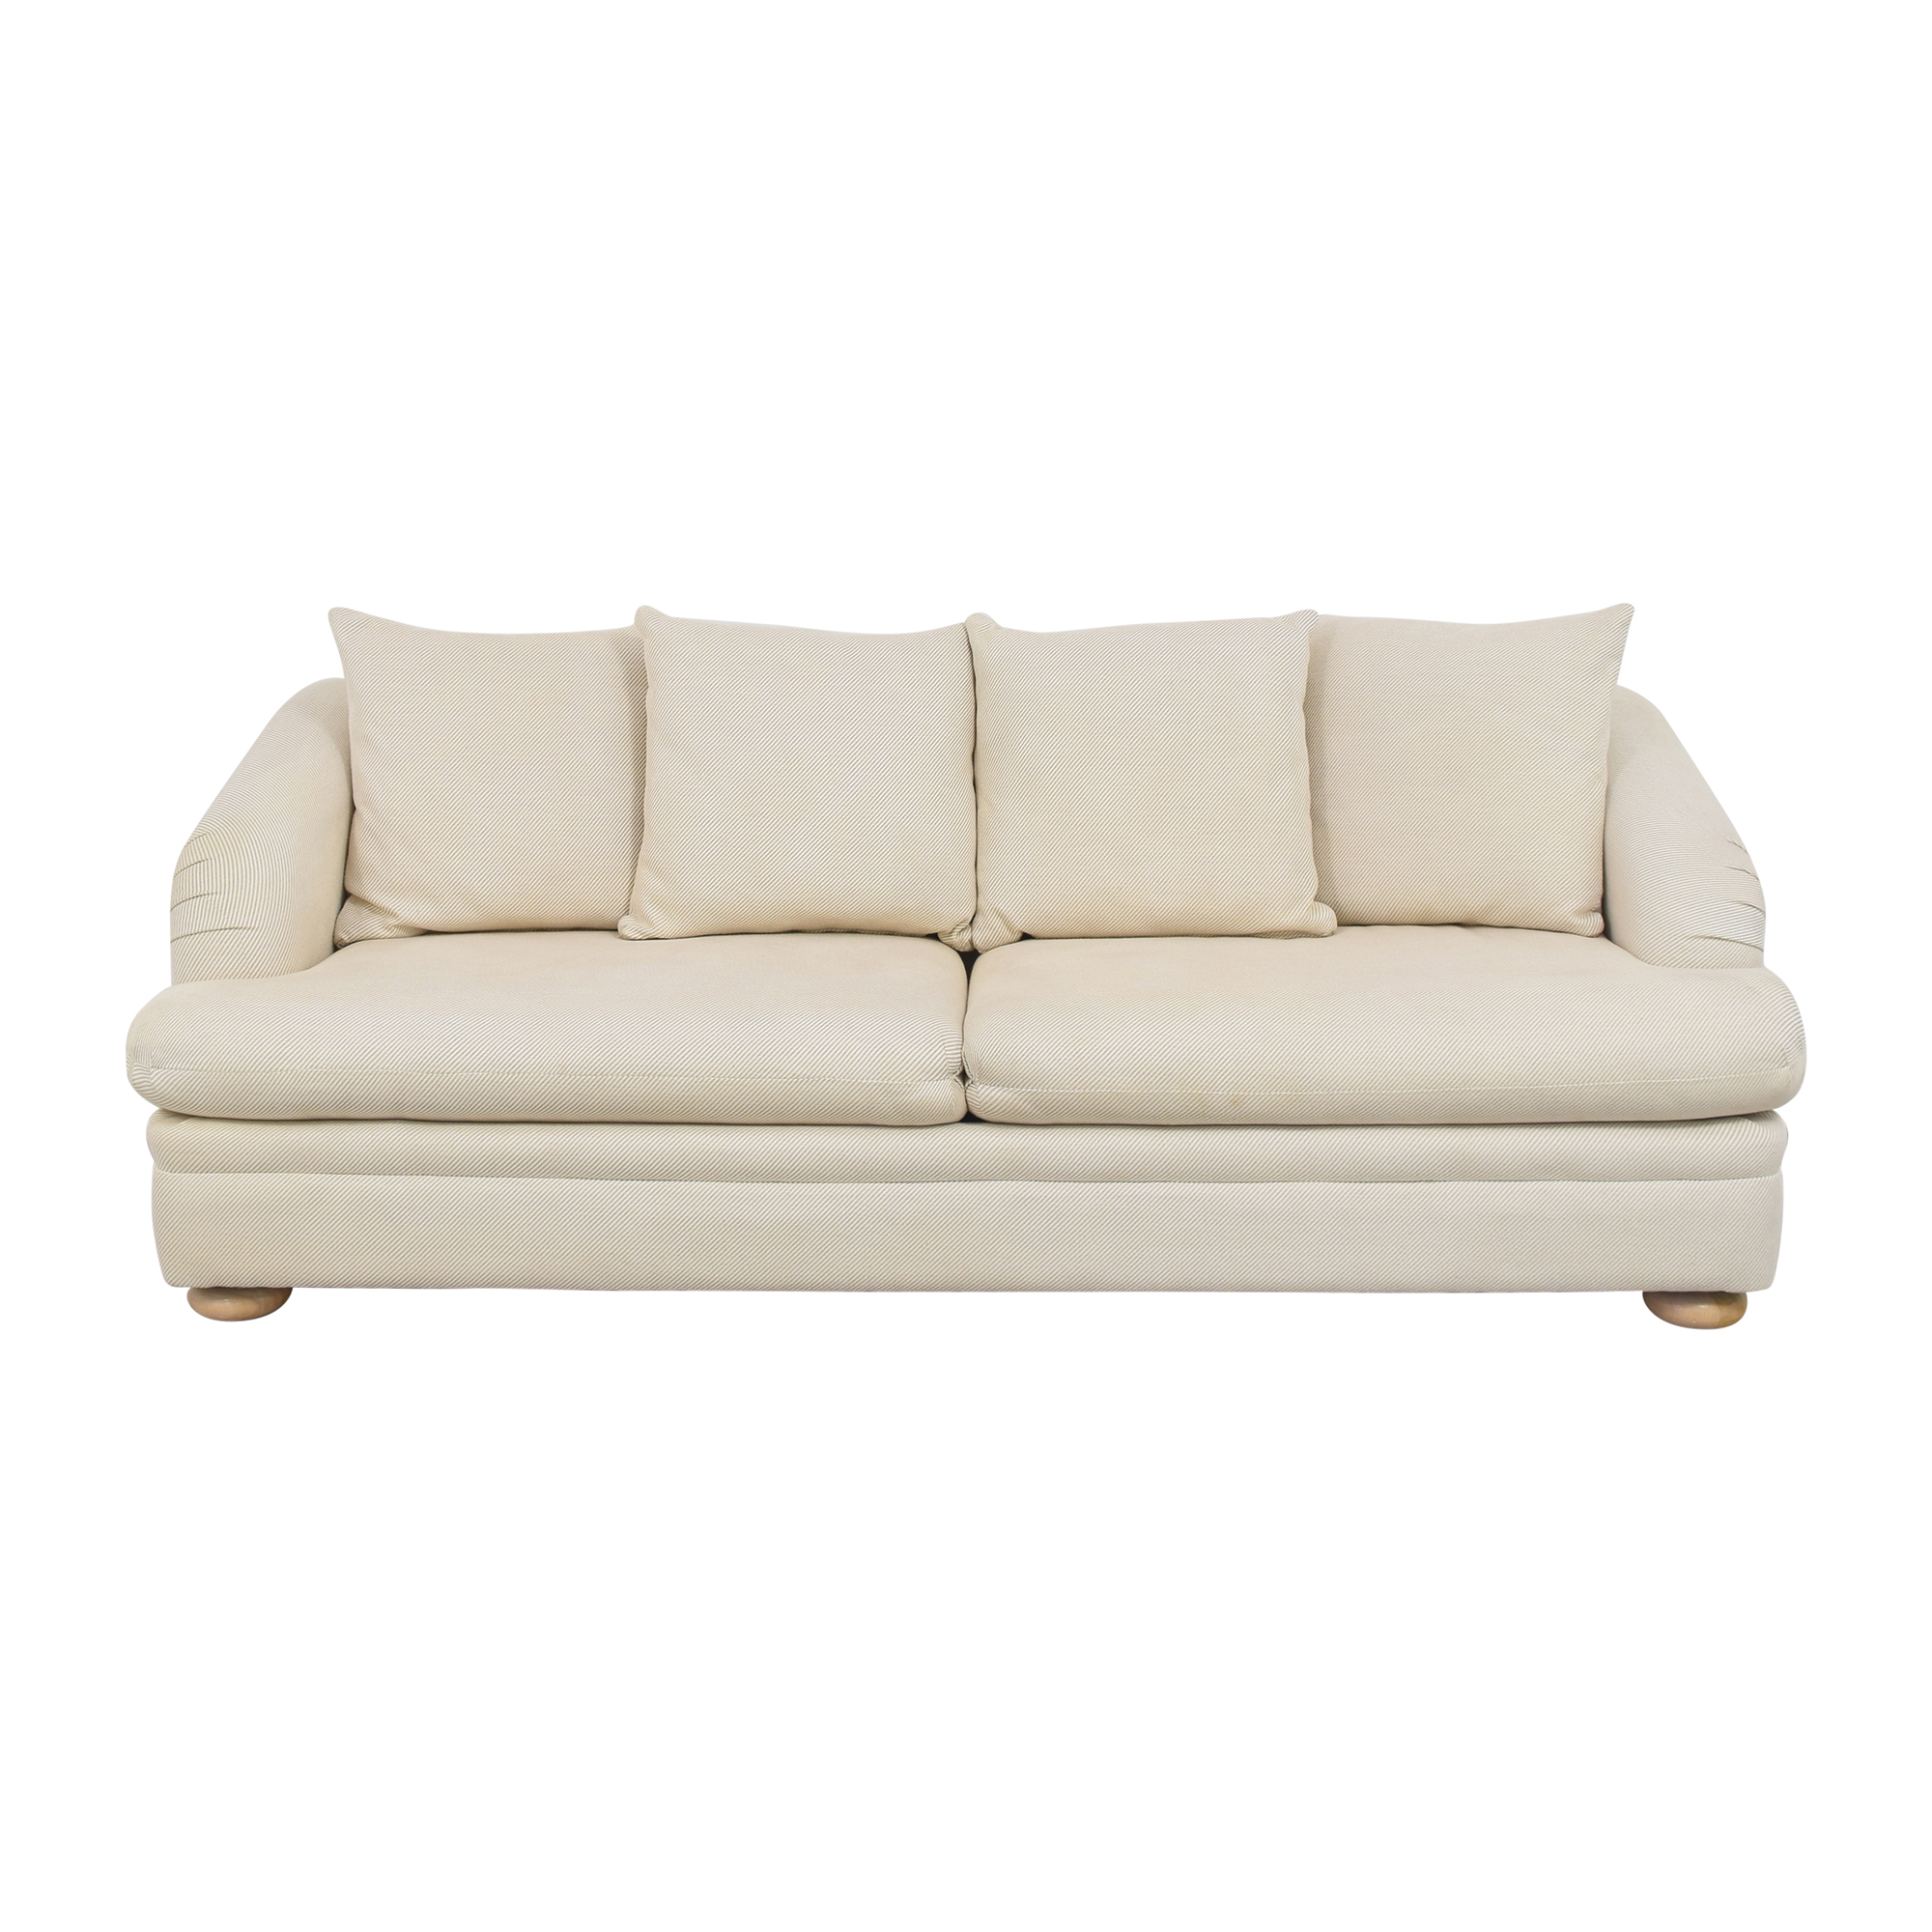 McCreary Modern McCreary Modern English Roll Arm Sofa nj